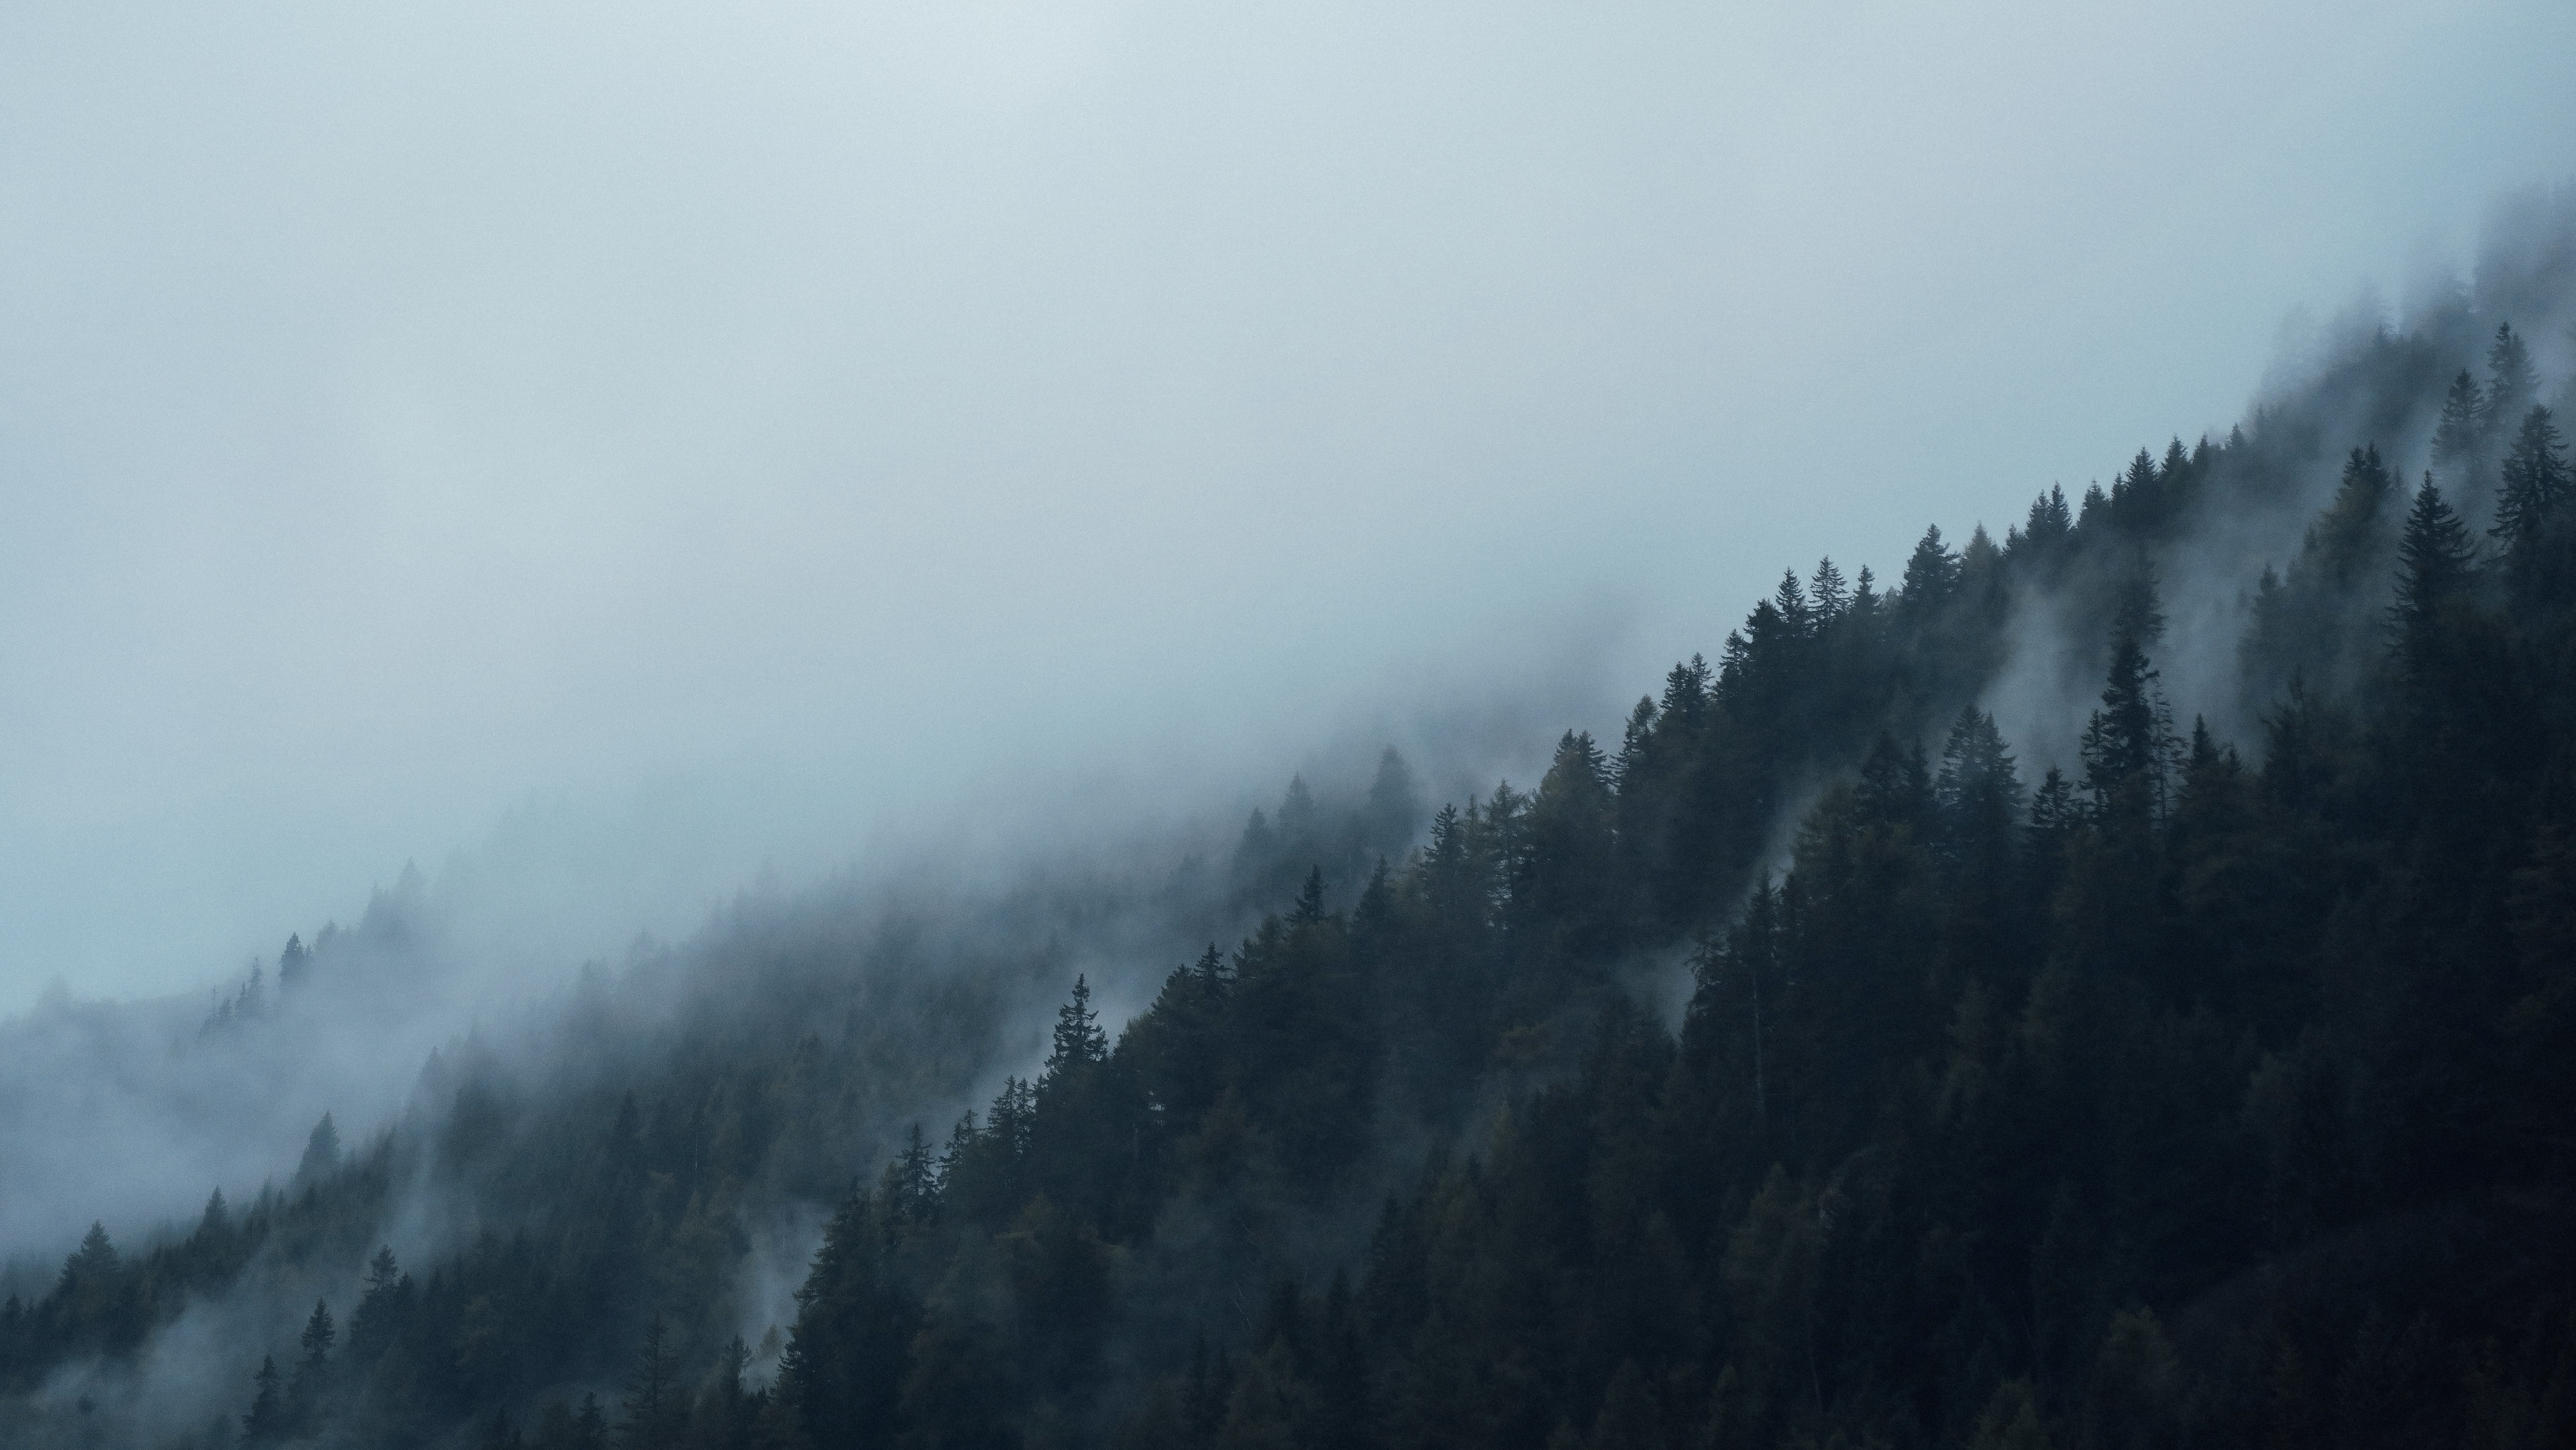 Mist enveloping an evergreen forest in Brenner Pass